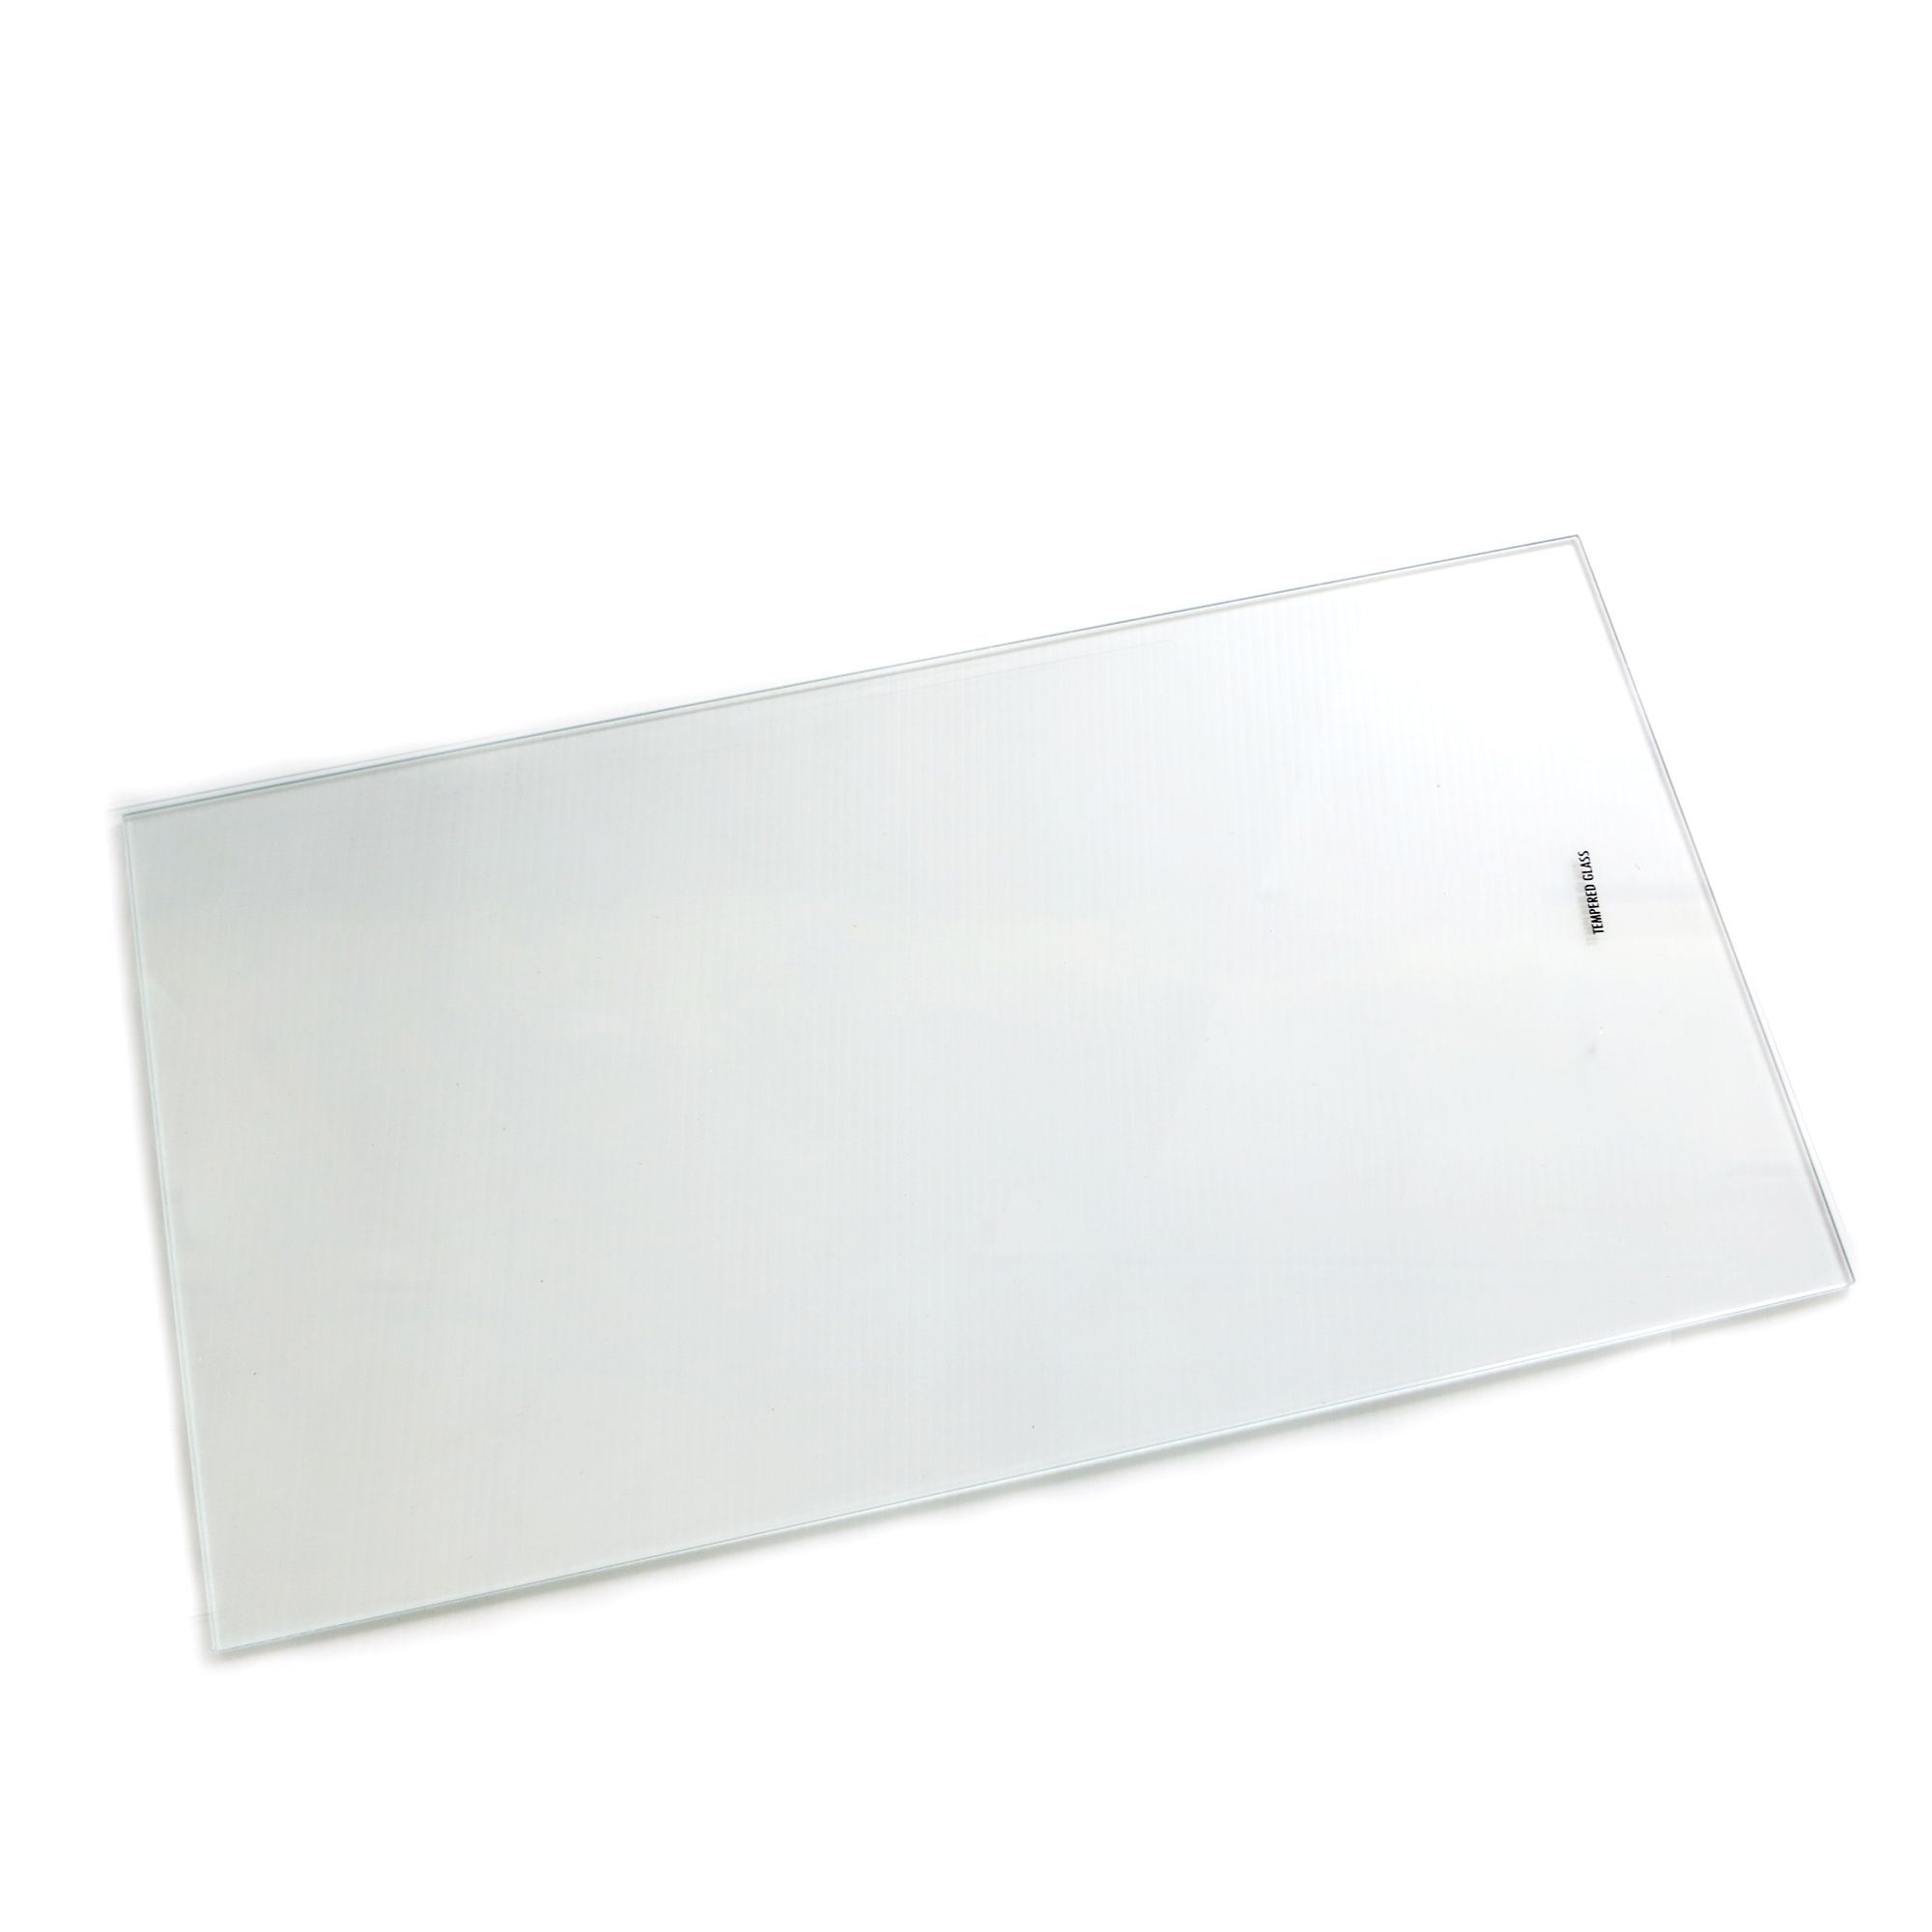 Clear Internal Glass Kitchen Cabinet Shelves L 458mm D 247mm Pack Of 2 Departments Diy At B Q